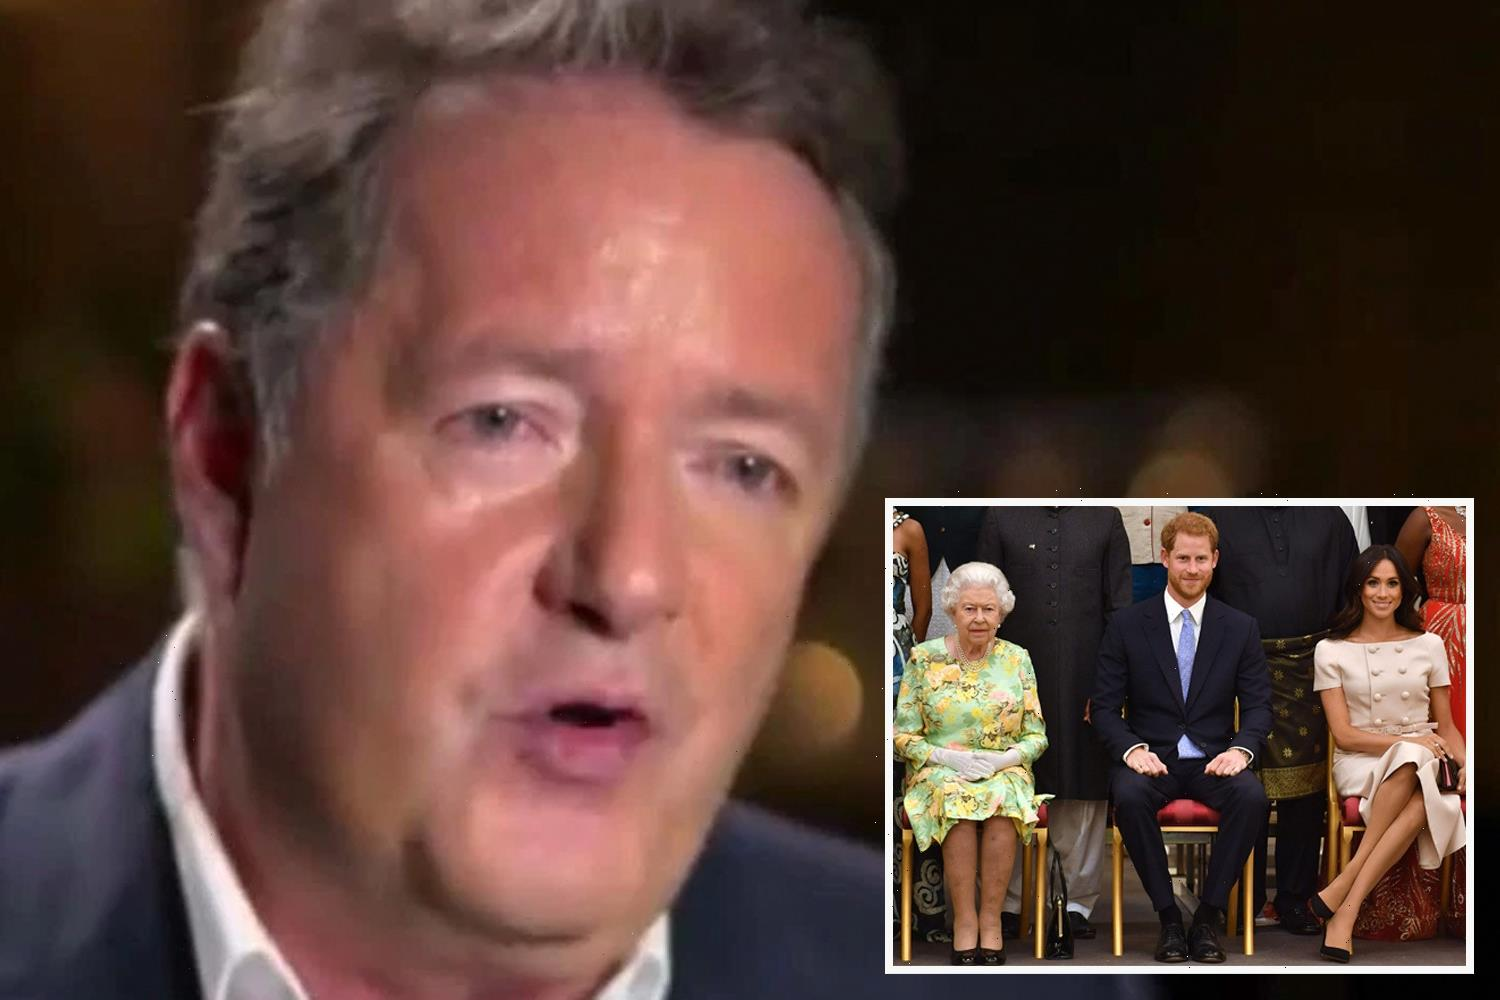 Piers Morgan to lift the lid on explosive Meghan Markle 'debacle' that saw him quit GMB in furious row